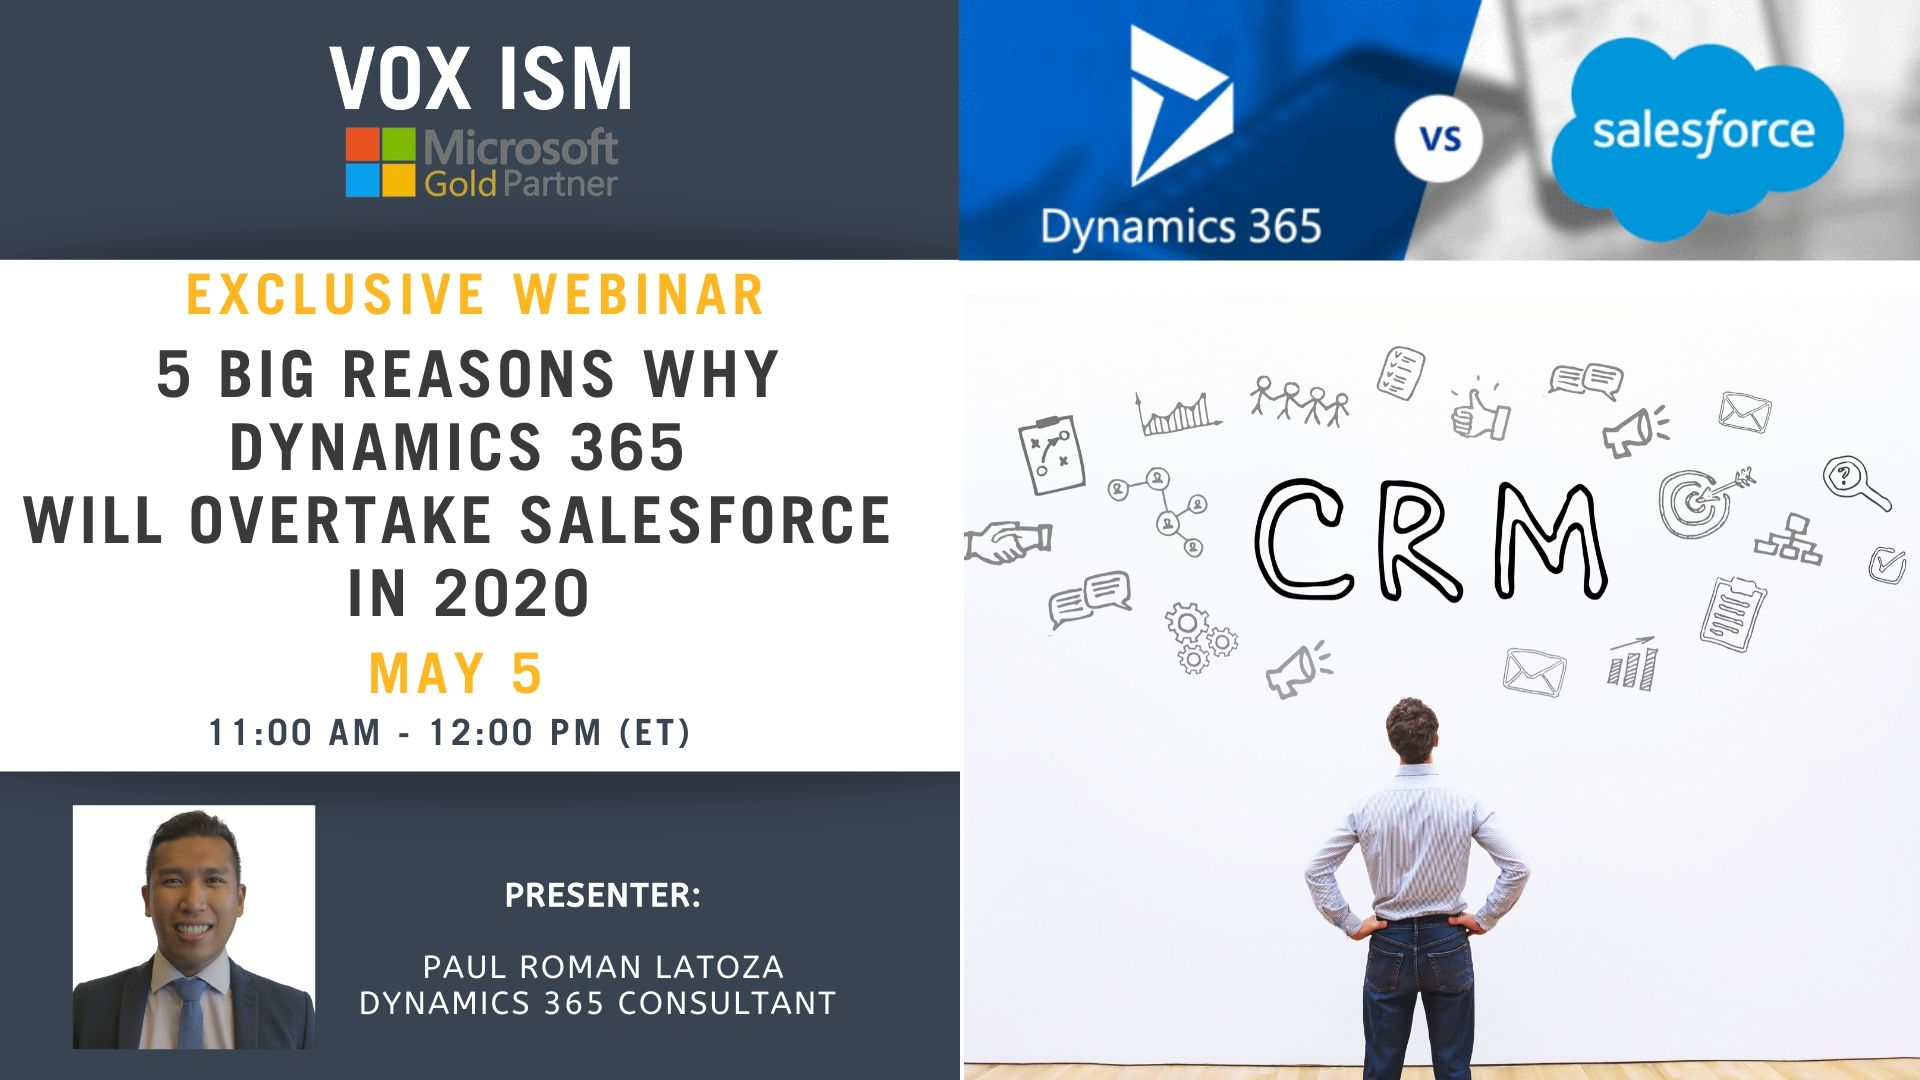 5 Big Reasons Why Dynamics 365 will overtake Salesforce in 2020 - May 5 - Webinar VOX ISM